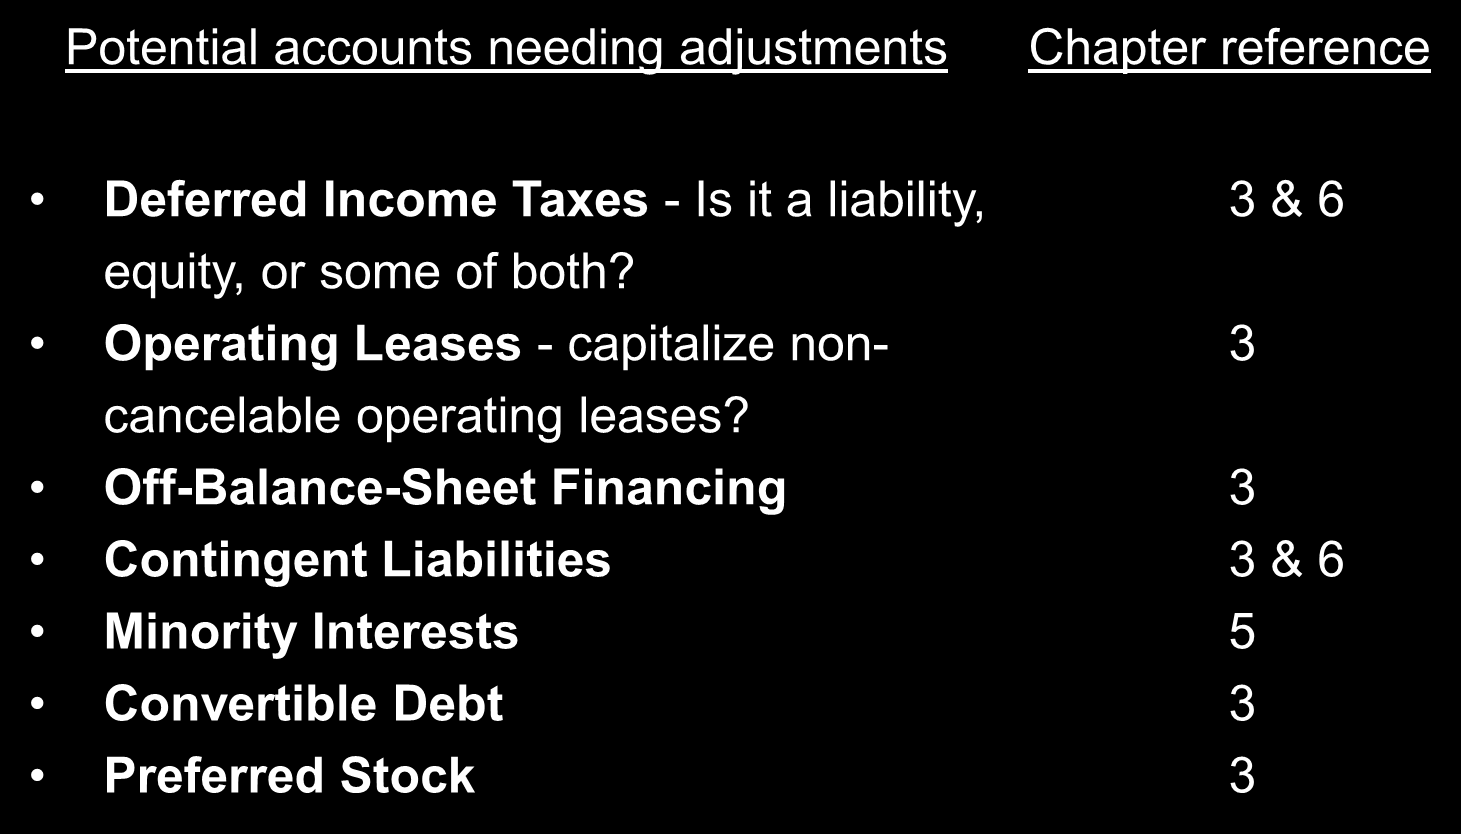 10-33 Basics of Solvency Adjustments for Capital Structure - Liabilities Potential accounts needing adjustments Chapter reference Deferred Income Taxes - Is it a liability, 3 & 6 equity, or